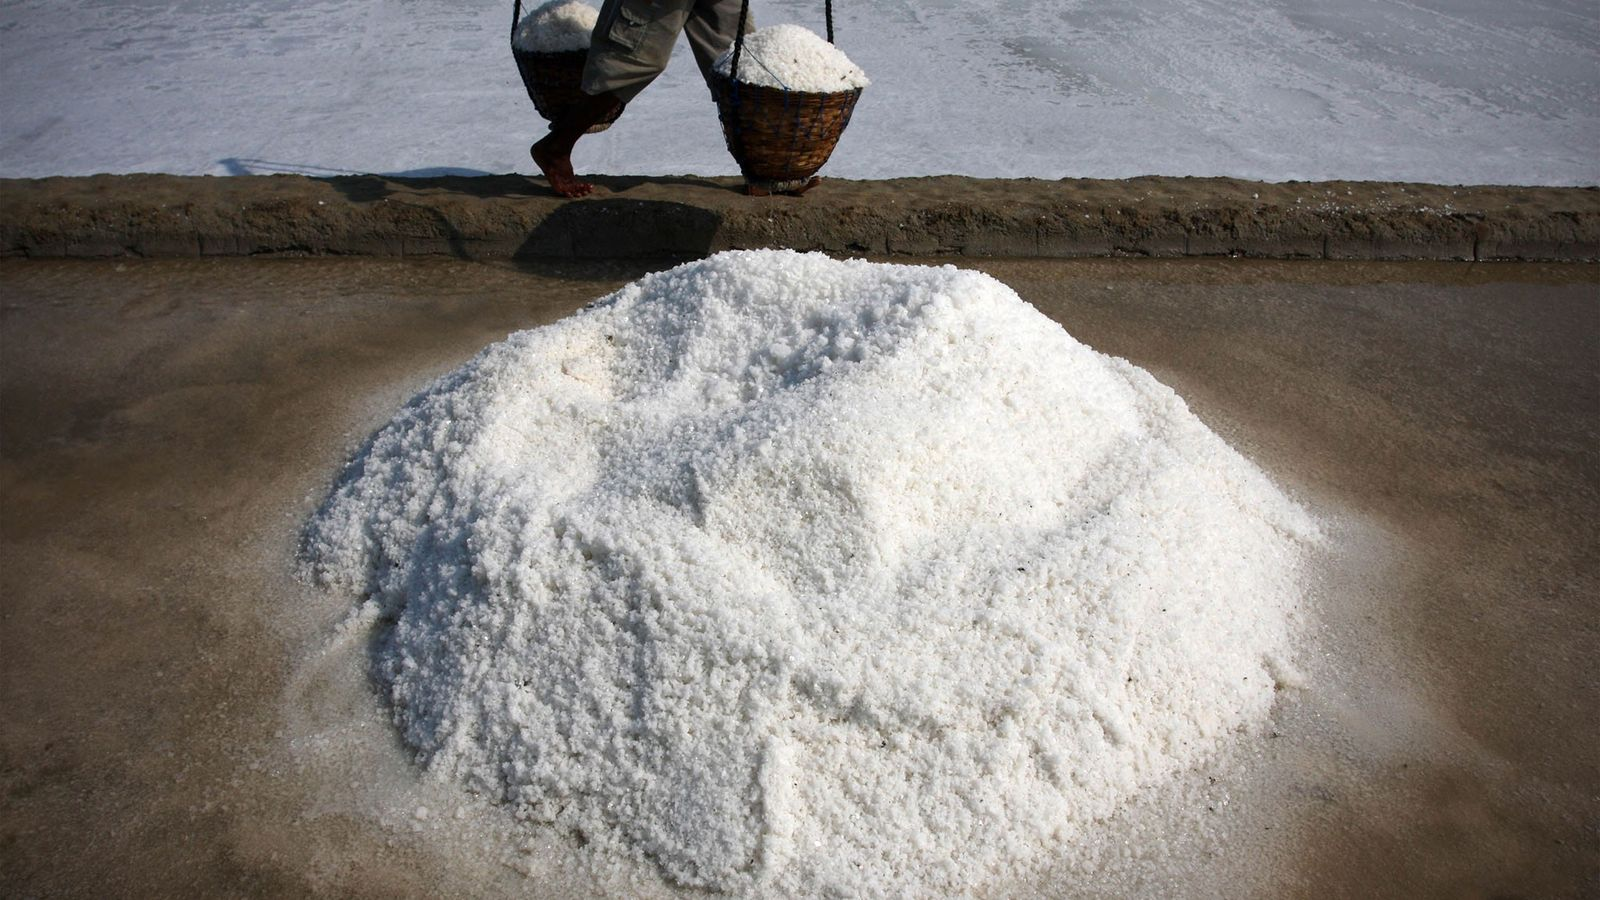 Salt is produced on Madura Island, Indonesia, by evaporating seawater, an ancient technique. A new study ...